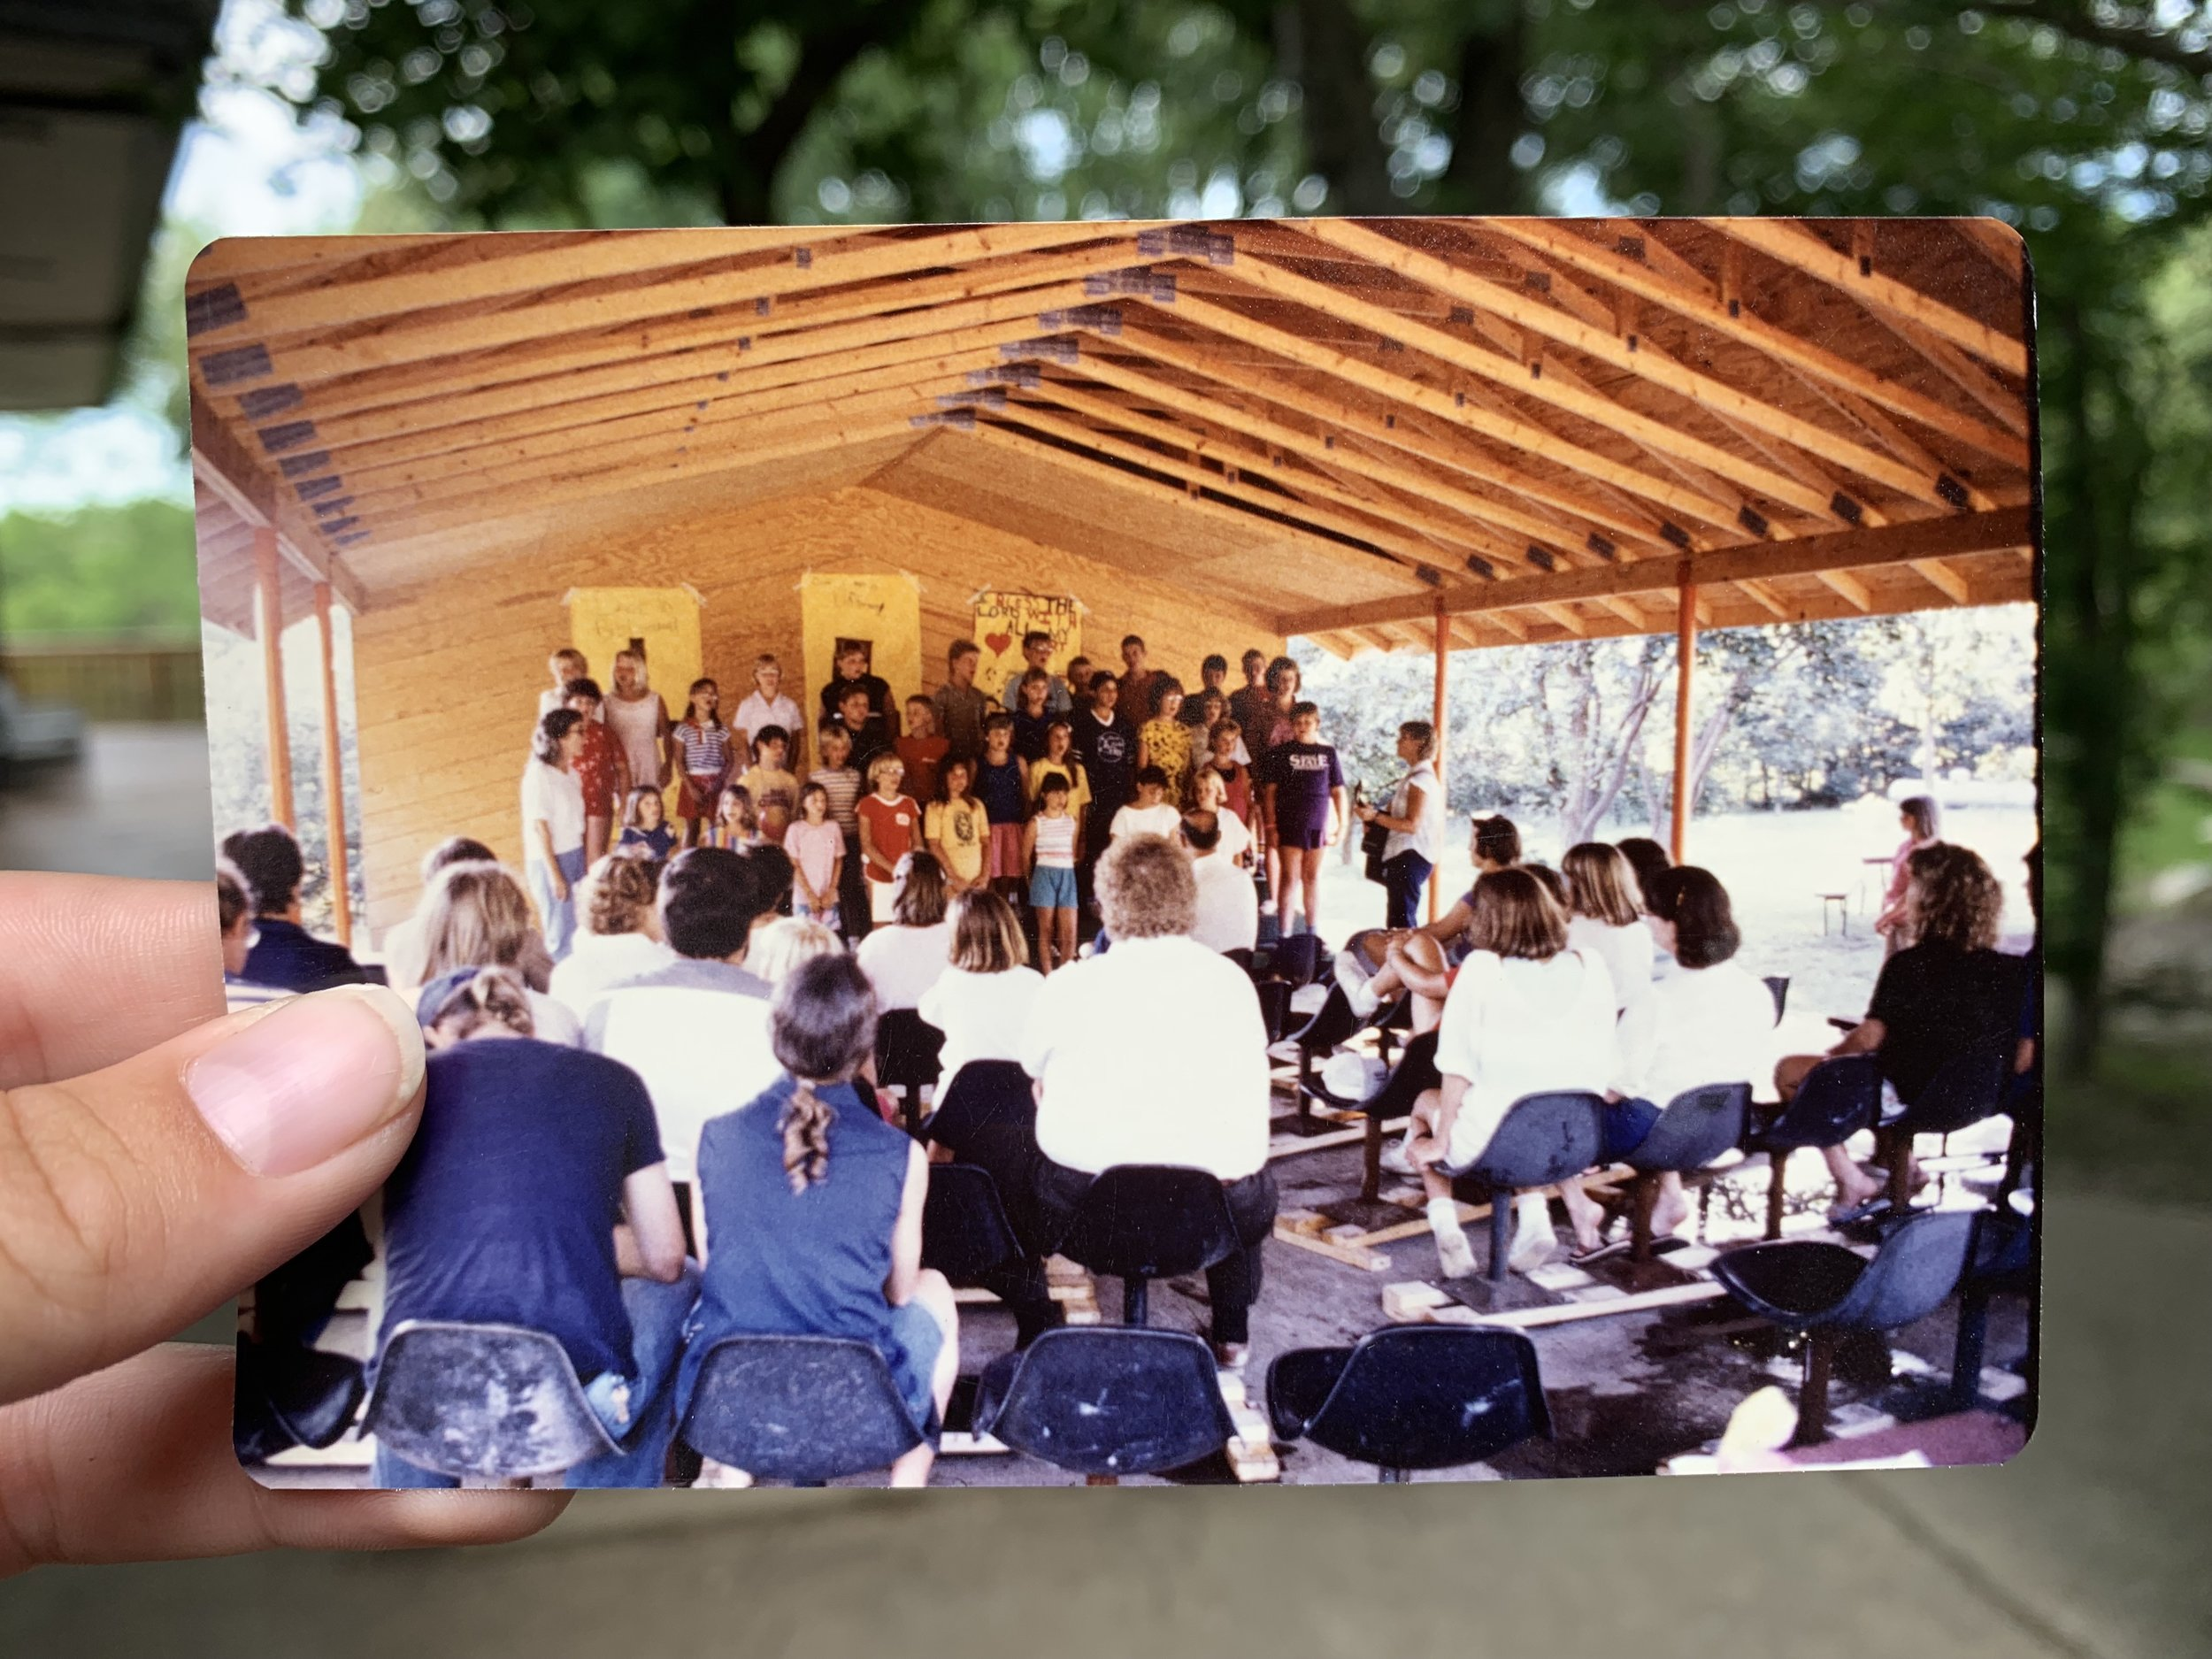 The Camp Pavilion - Sitting across from the dining hall, the pavilion has provided shelter for a countless number our camp dances, talent shows, worships, and other events for years and years.